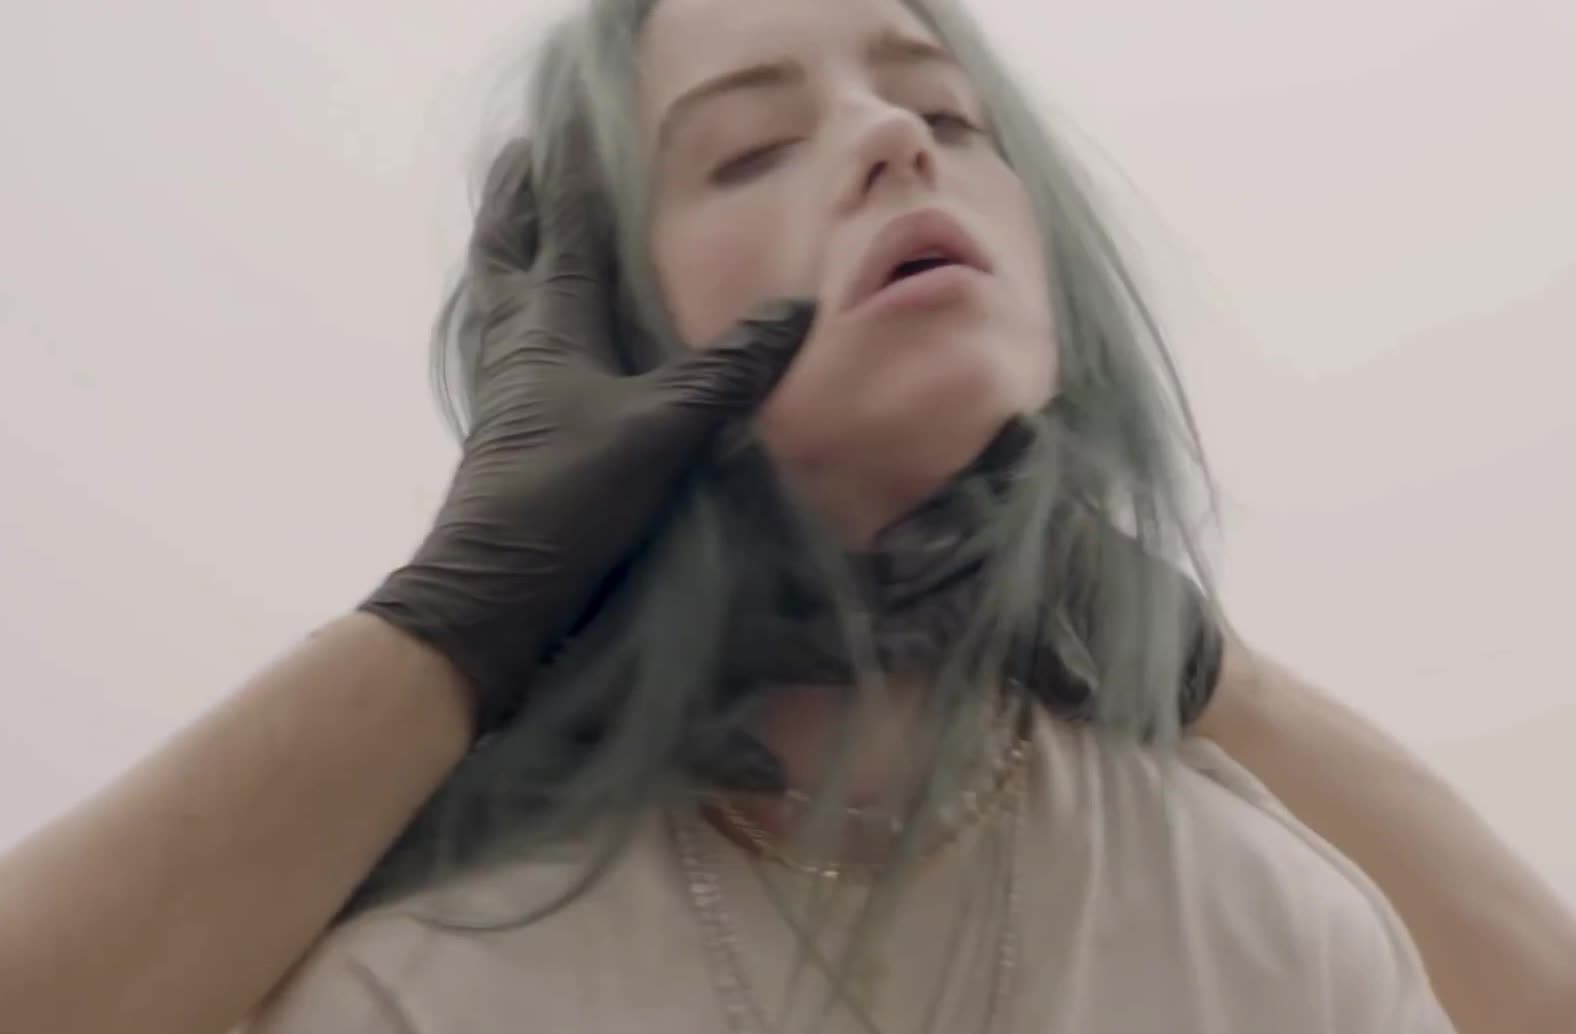 abused, all, are, billie, billie eilish, dizzy, eilish, face, fall, going, hahahahaha, hands, mess, new, scary, song, teaser, we, when, where, Billie Eilish GIFs